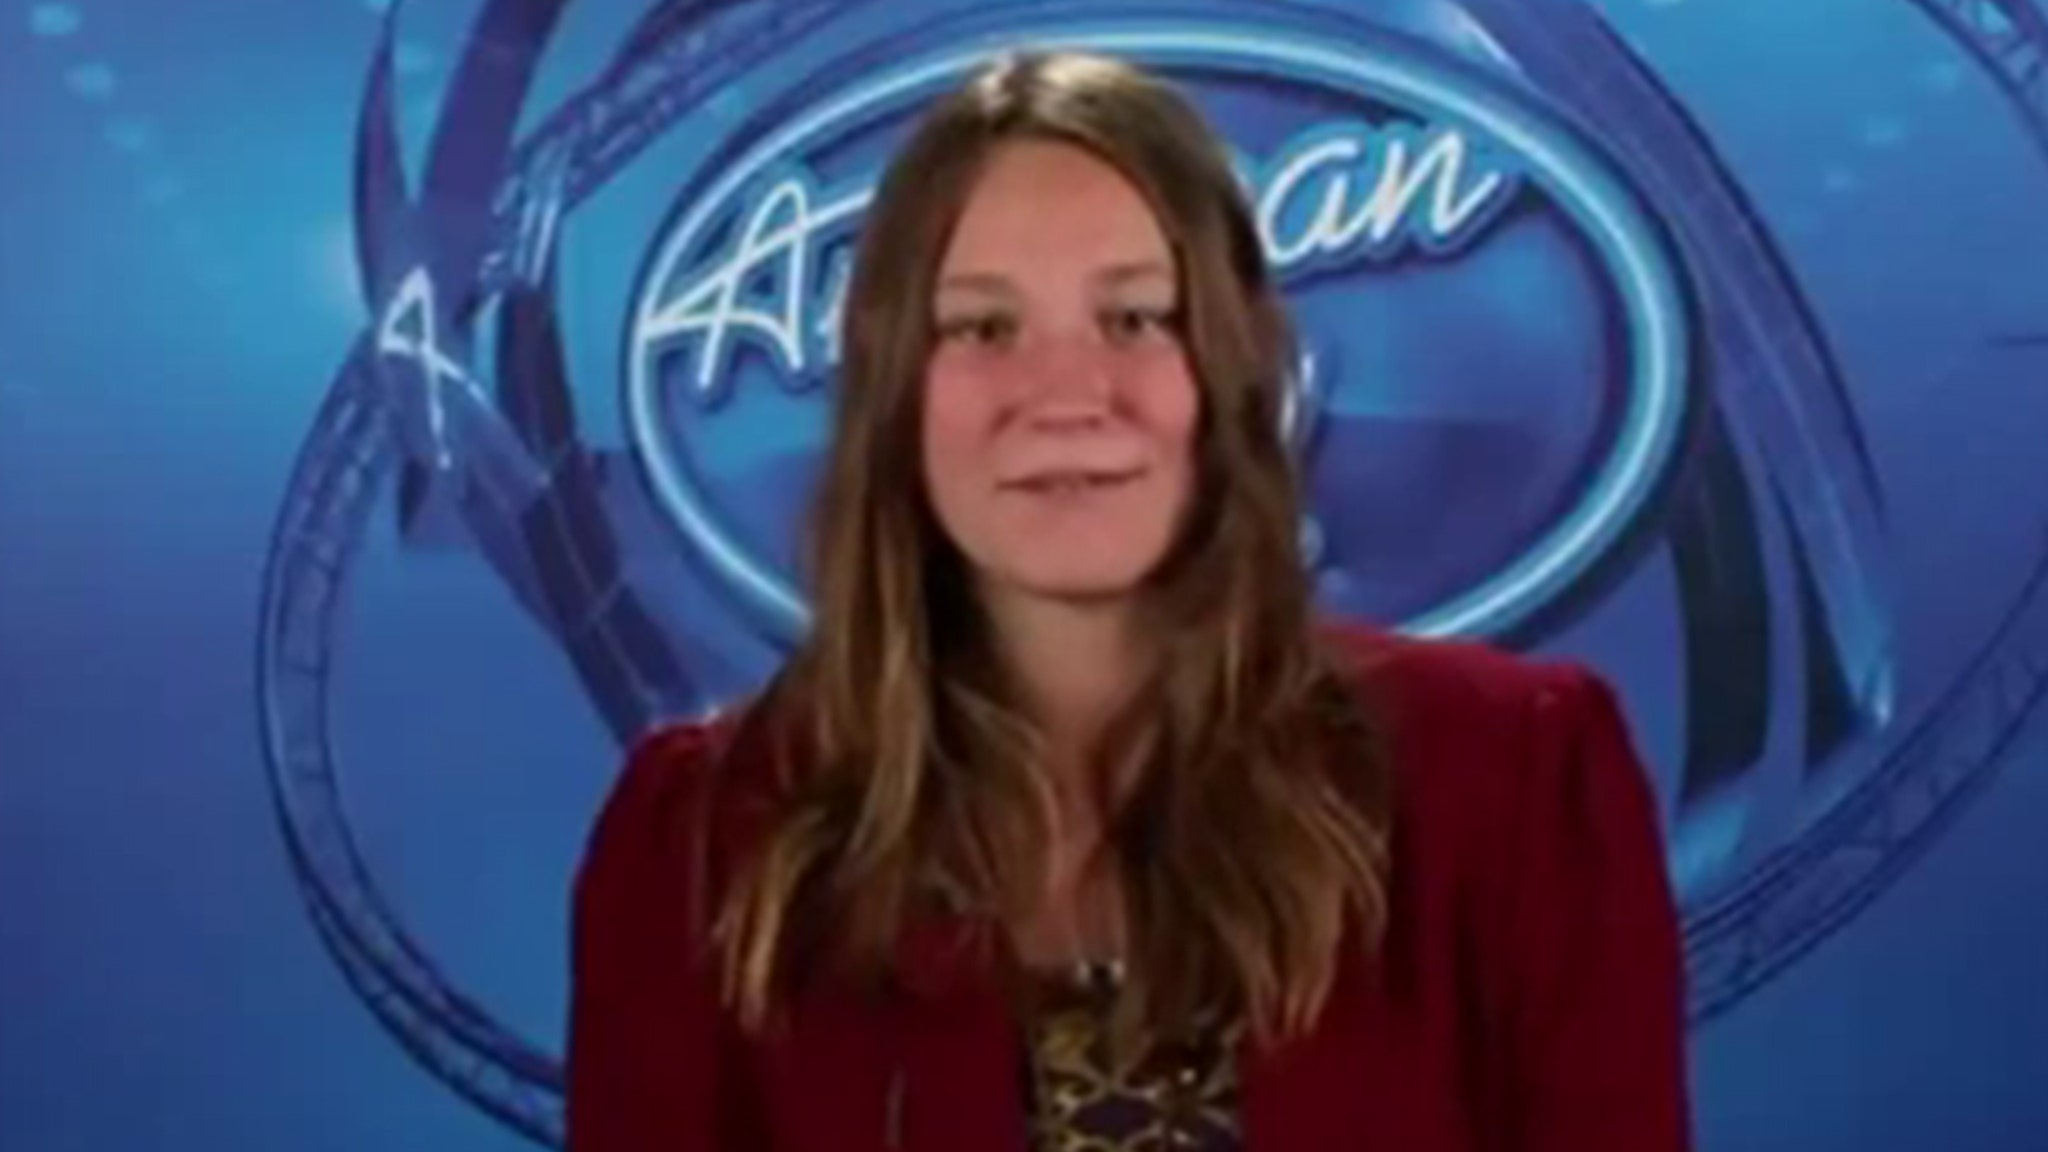 'American Idol' Contestant Haley Smith Dies in Motorcycle Accident